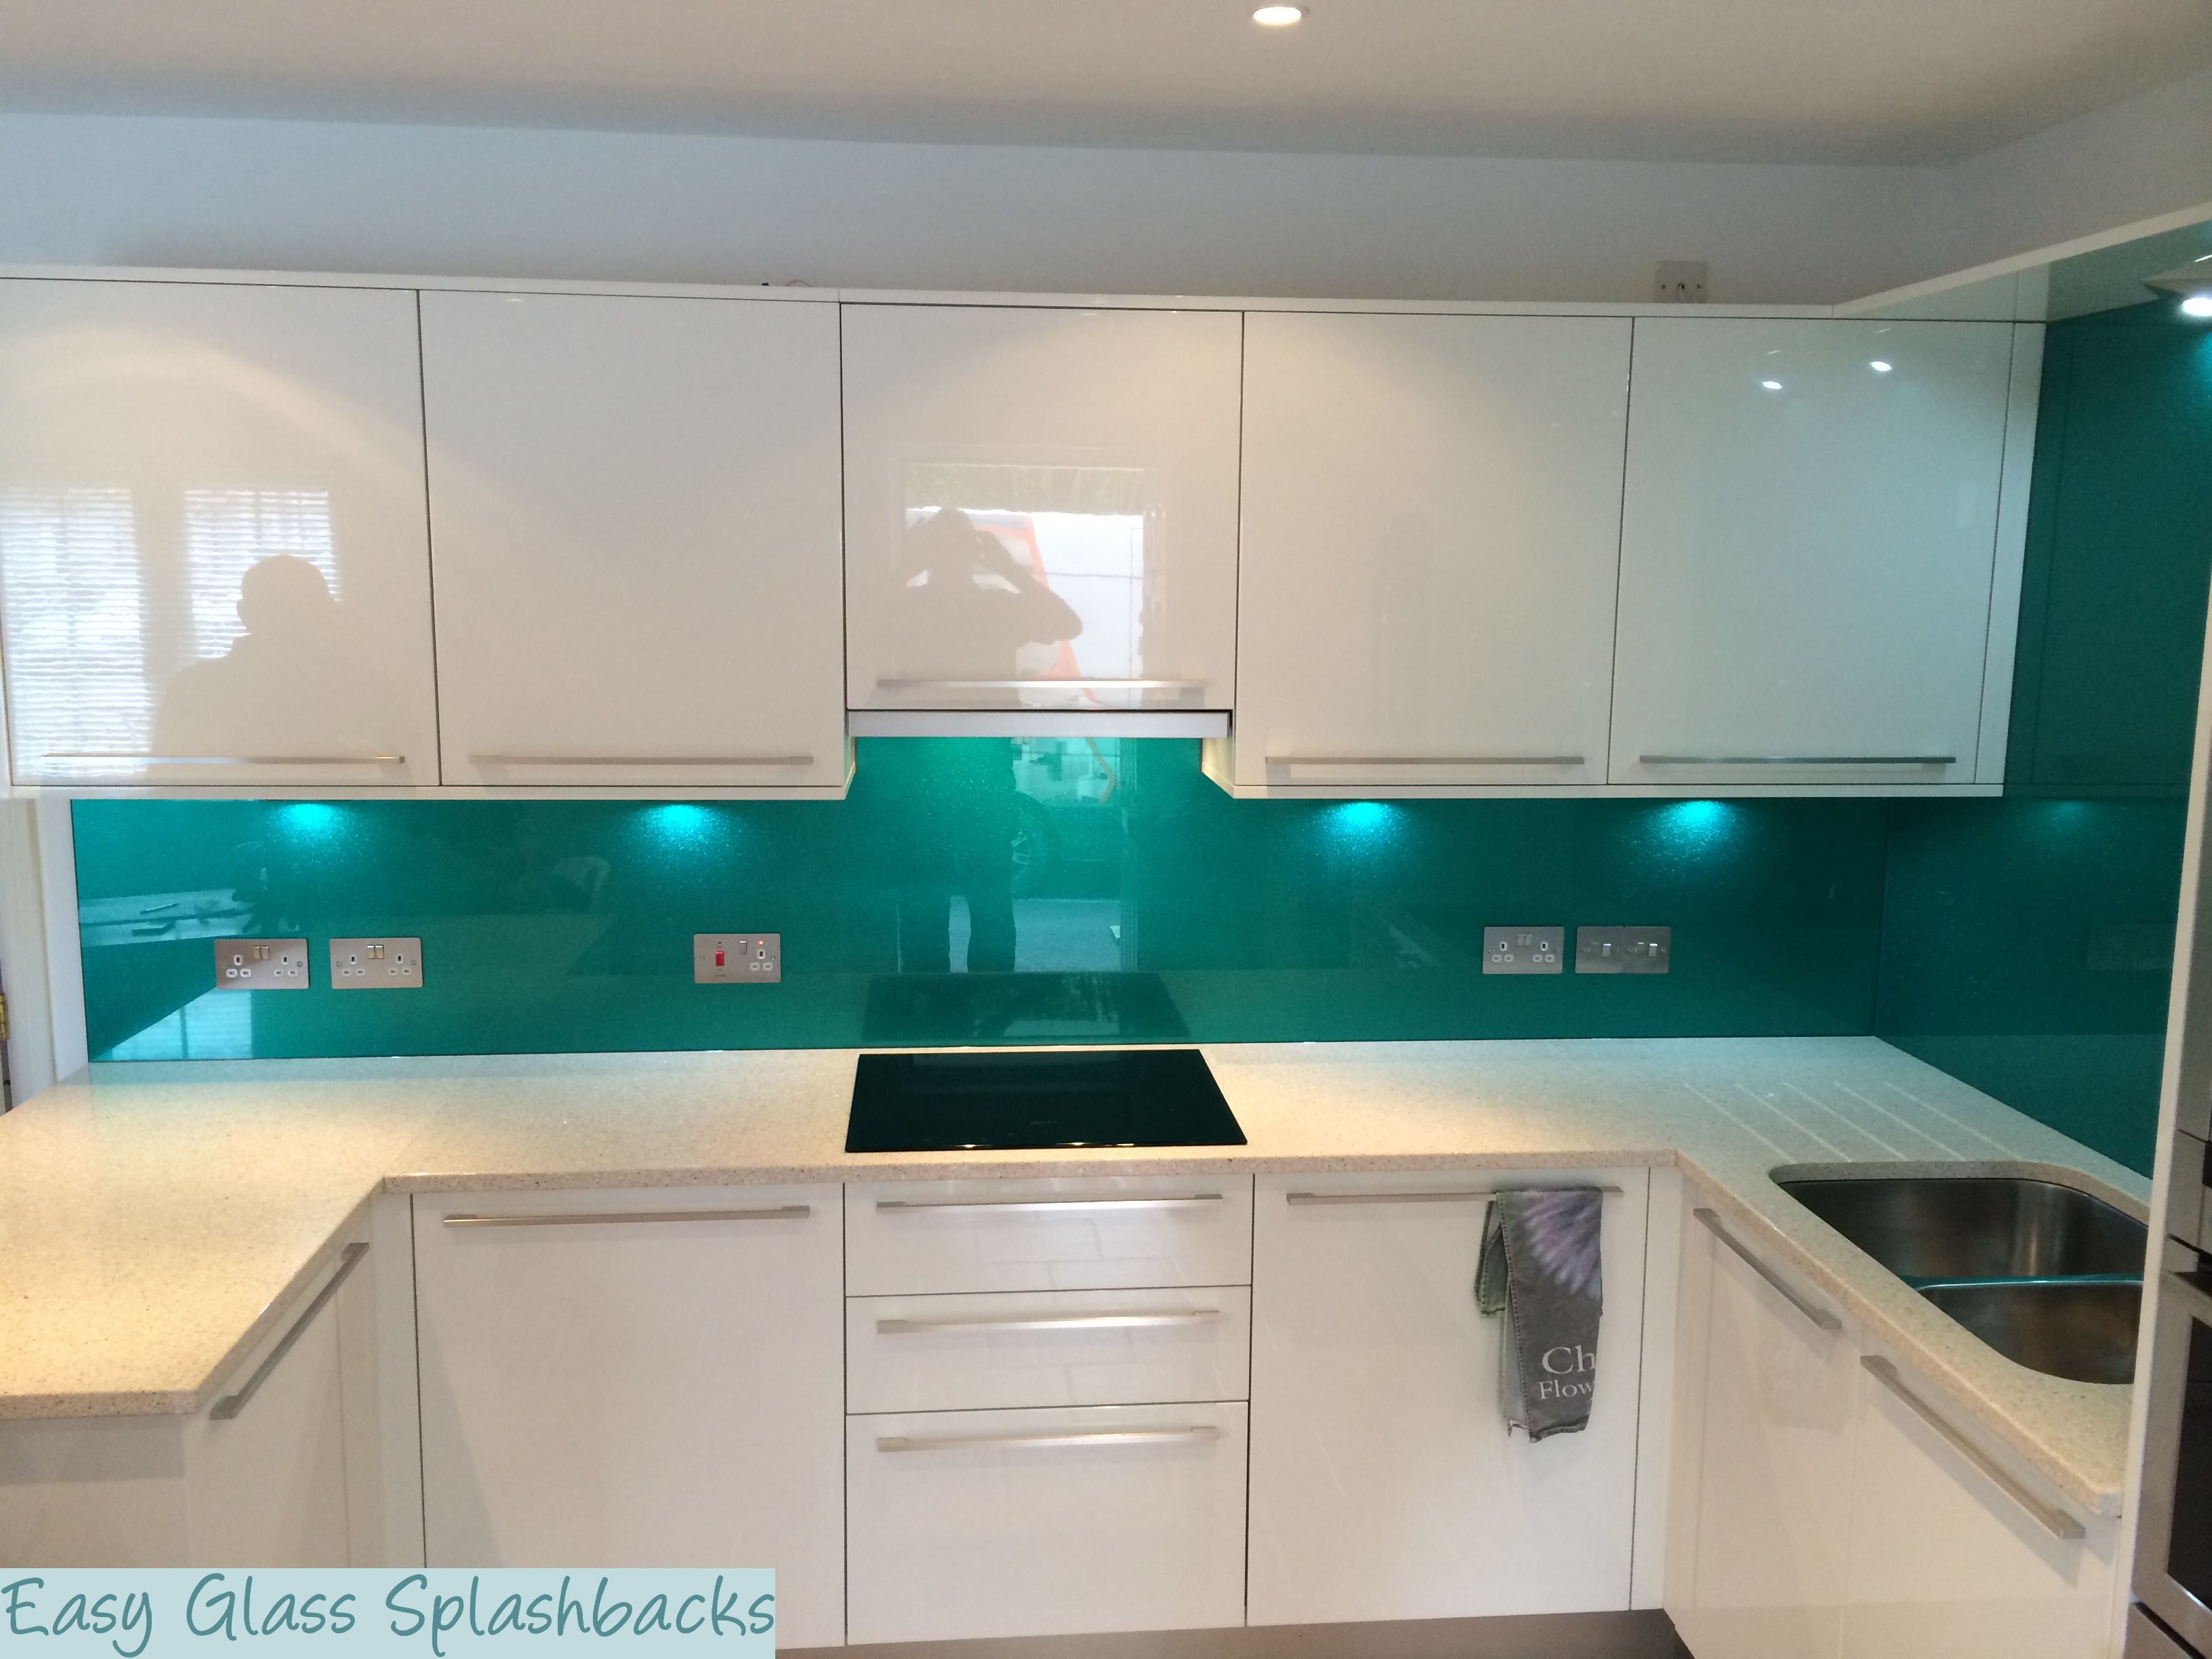 Kryponite Sparkly Green coloured glass splashback in a White Kitchen ...